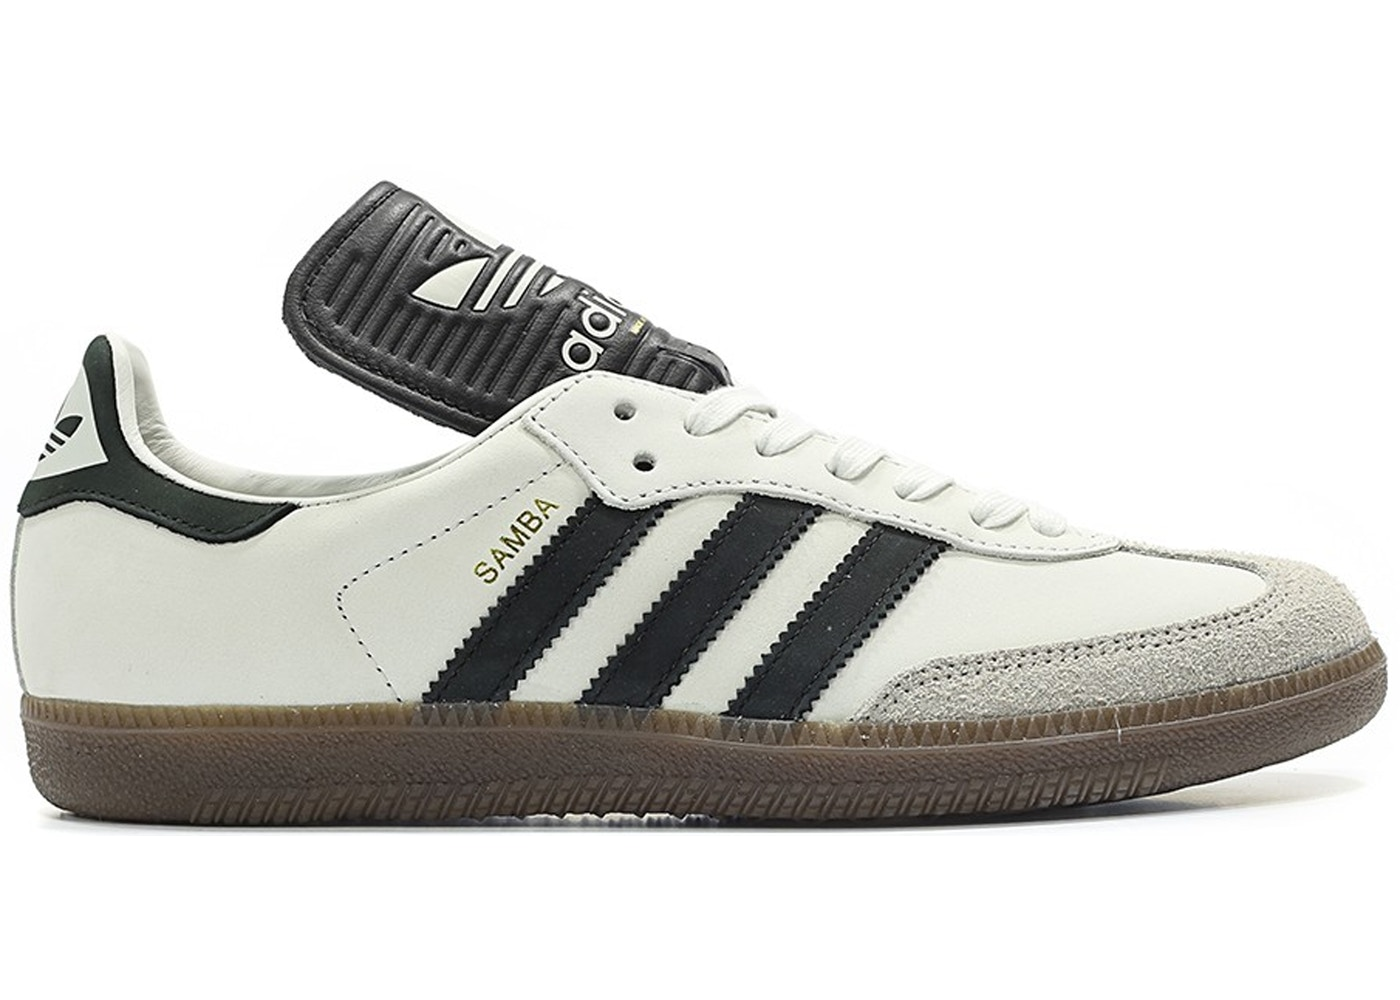 Stadium alloy Orient  adidas Samba Classic OG Made In Germany White Black - BB2587